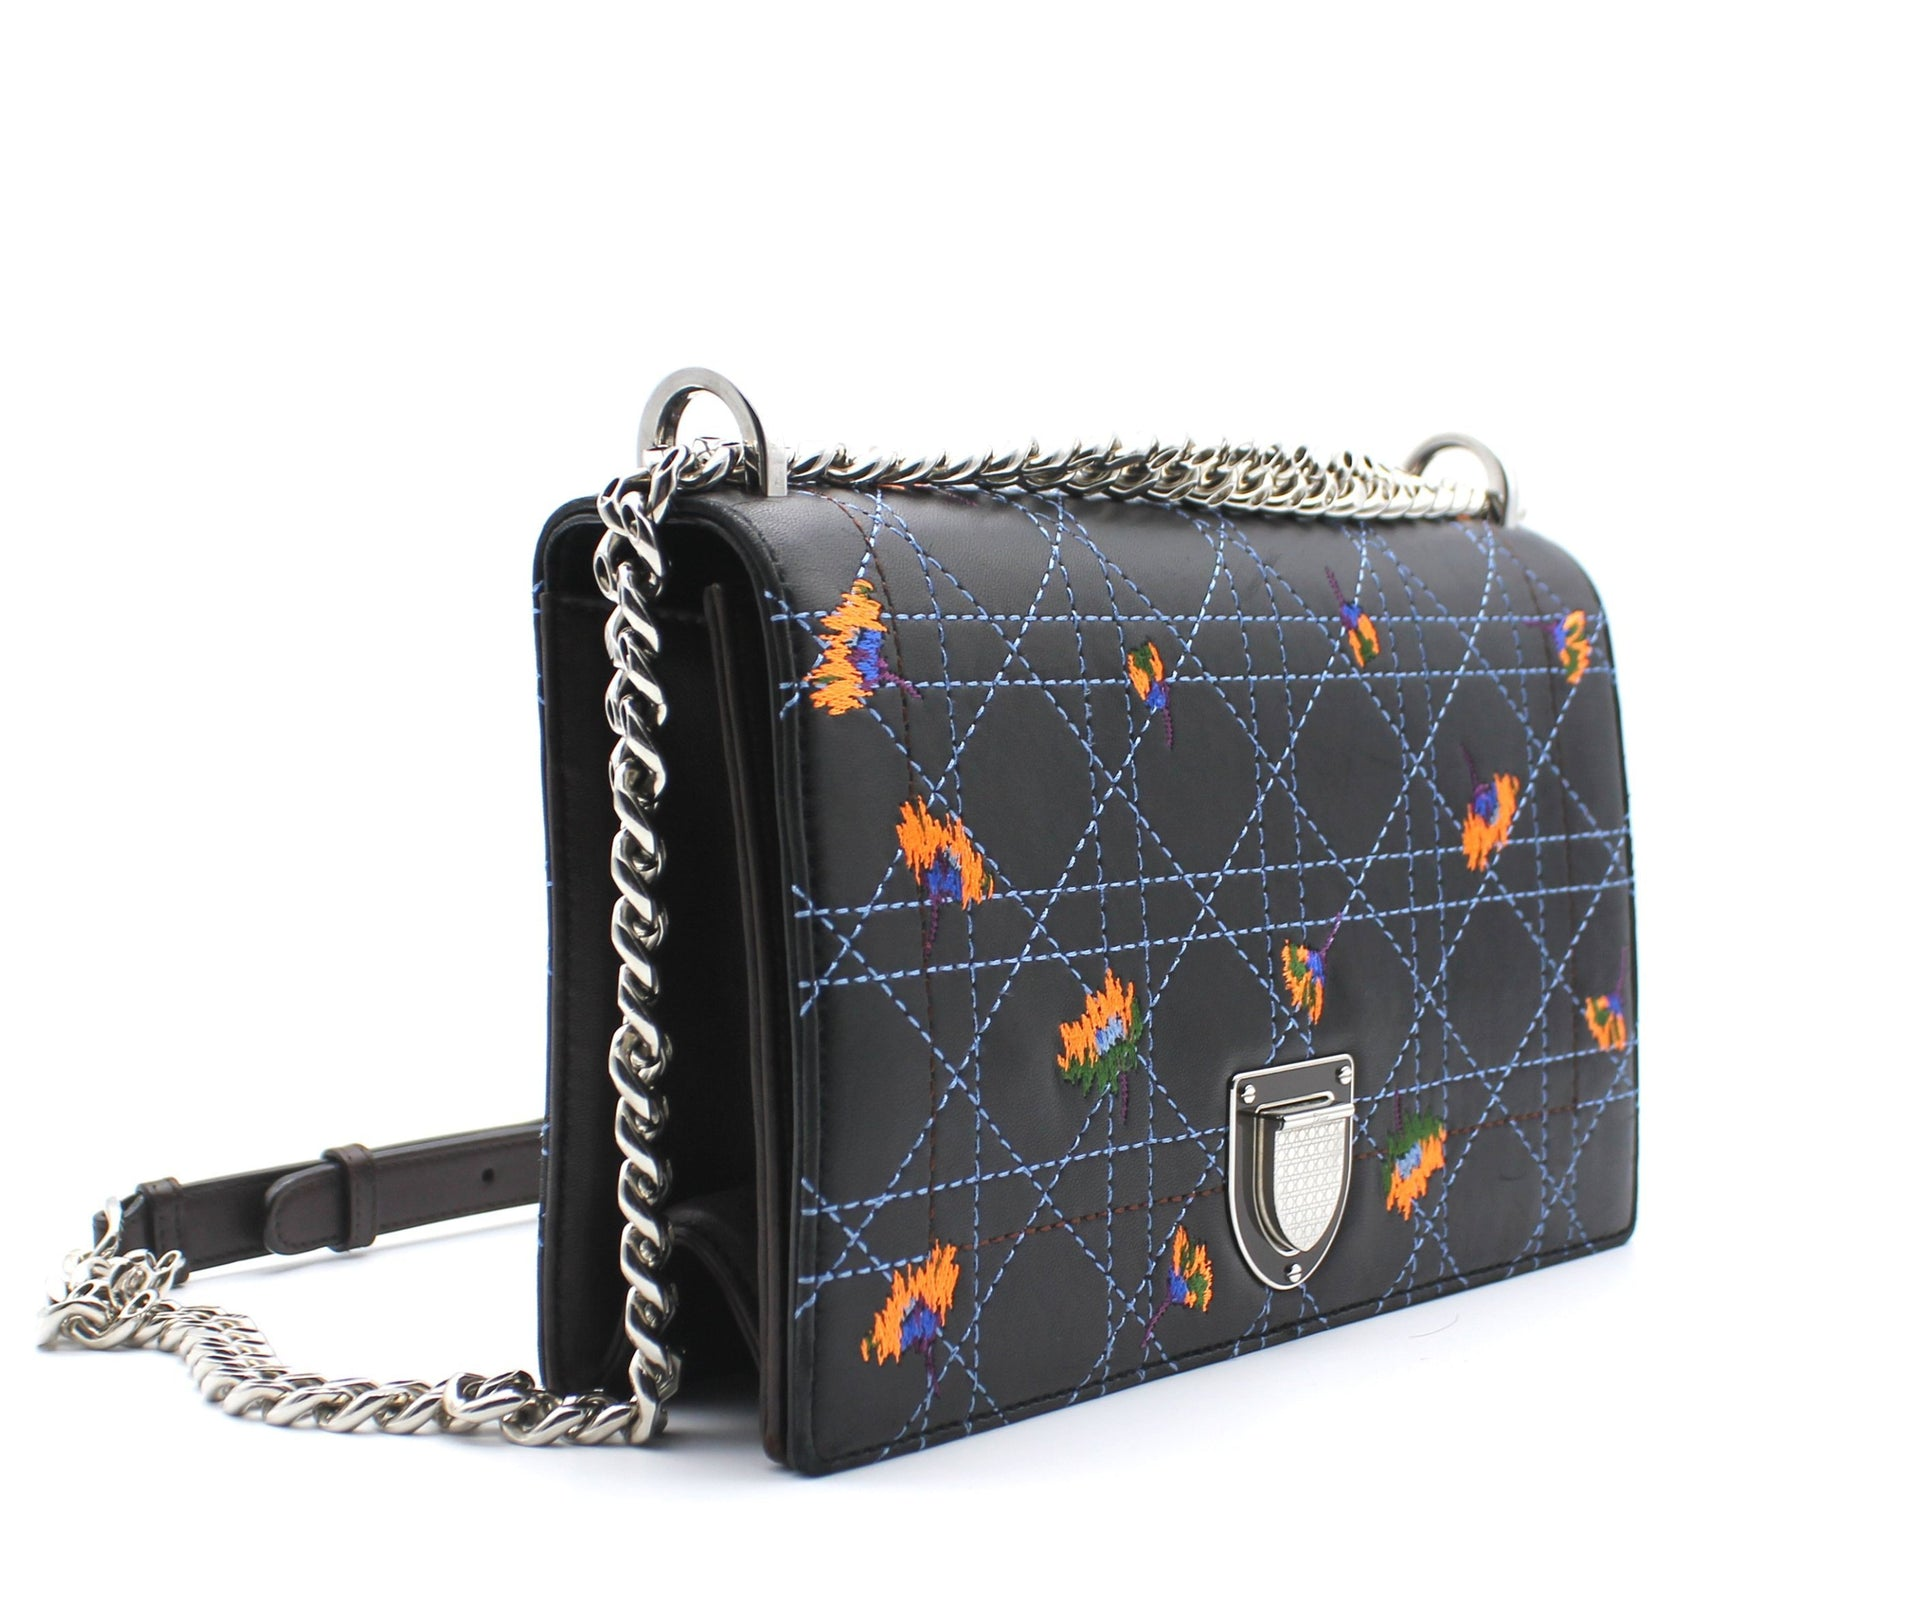 Dior Diorama Embroidered Lambskin Bag